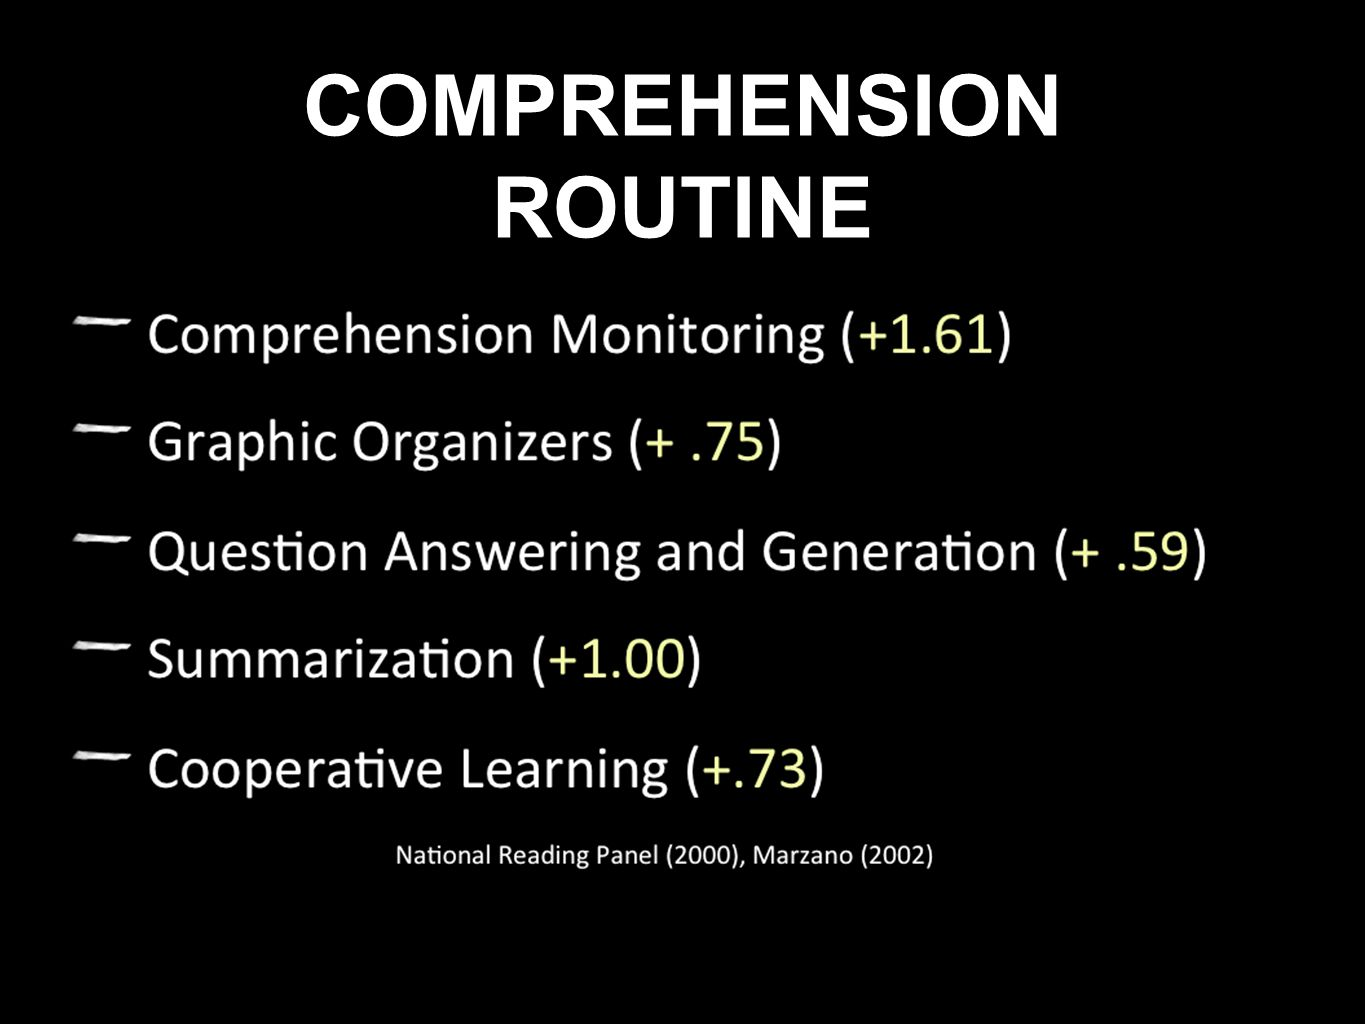 COMPREHENSION ROUTINE